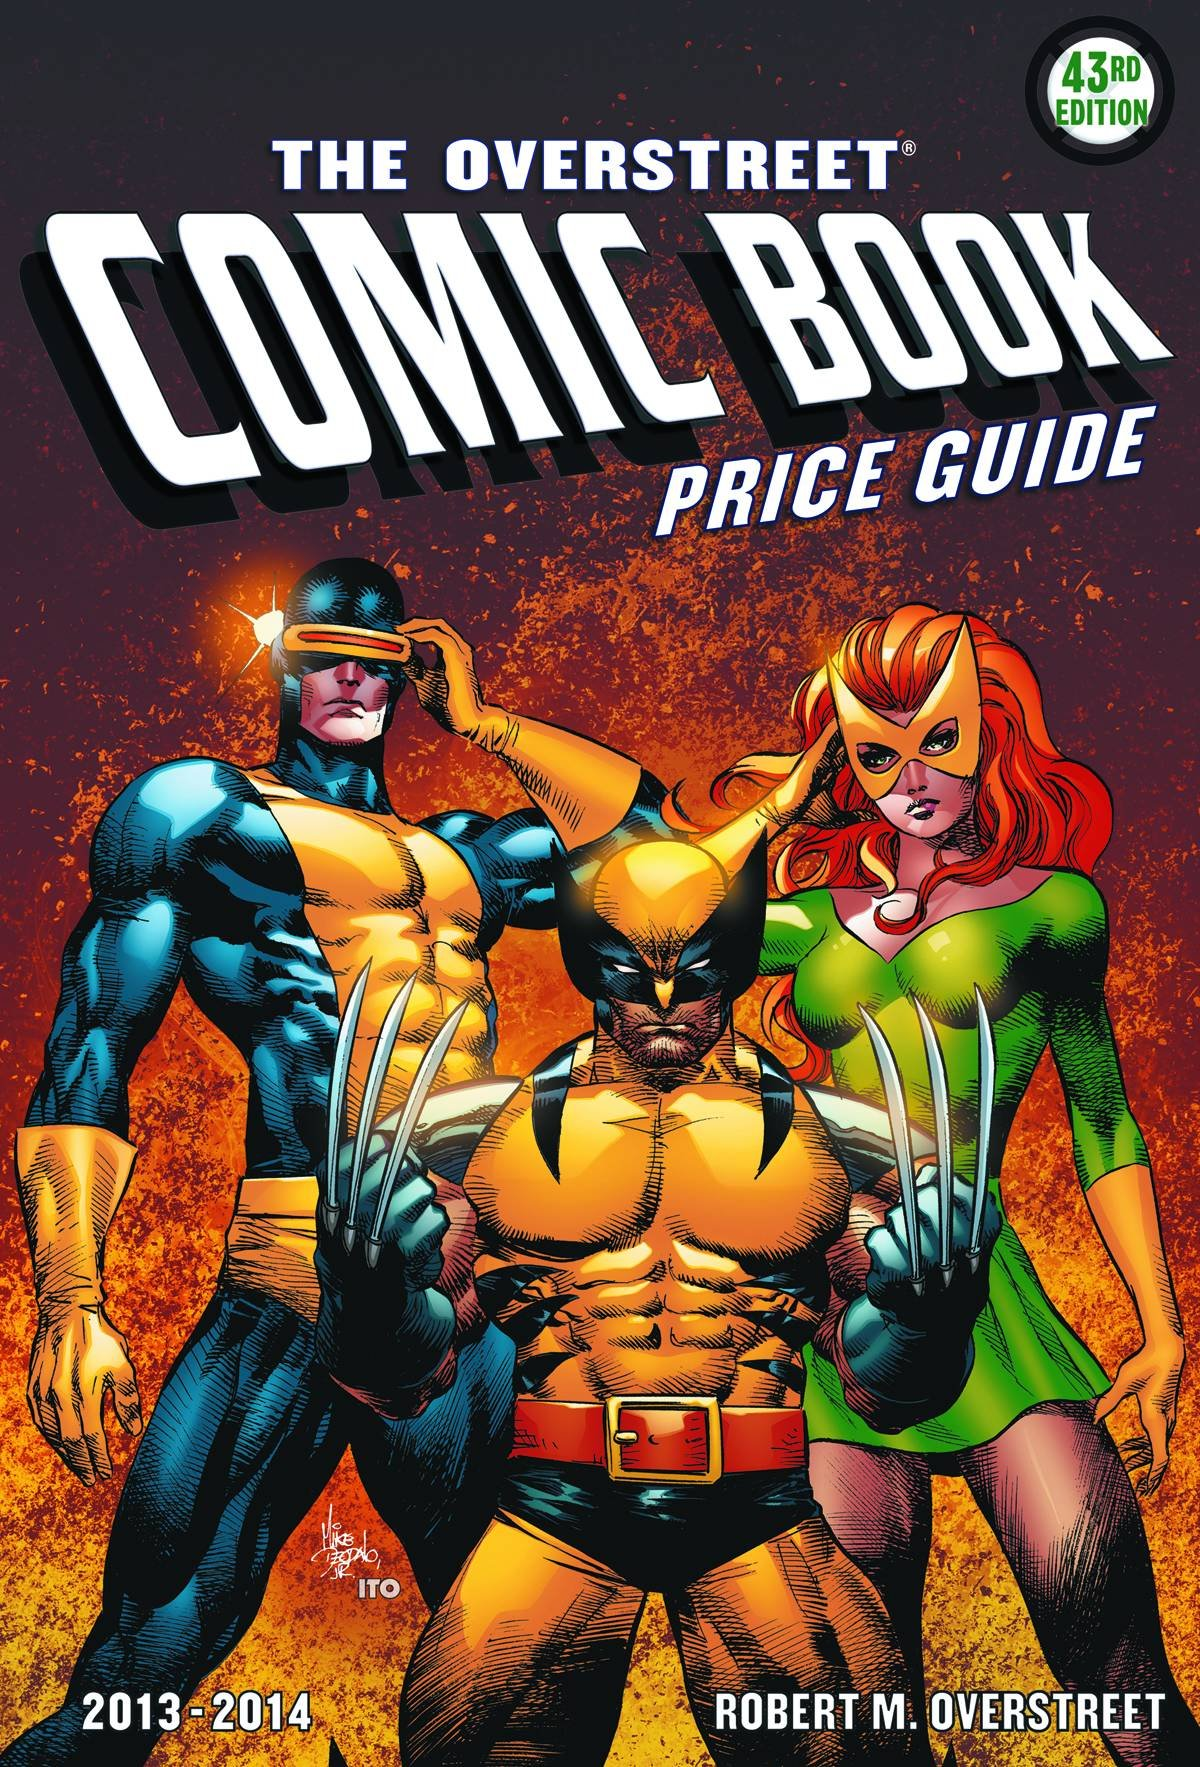 the overstreet comic book price guide vol 43 robert m overstreet rh amazon com Overstreet 43 Hero Overstreet Price Guide 2017